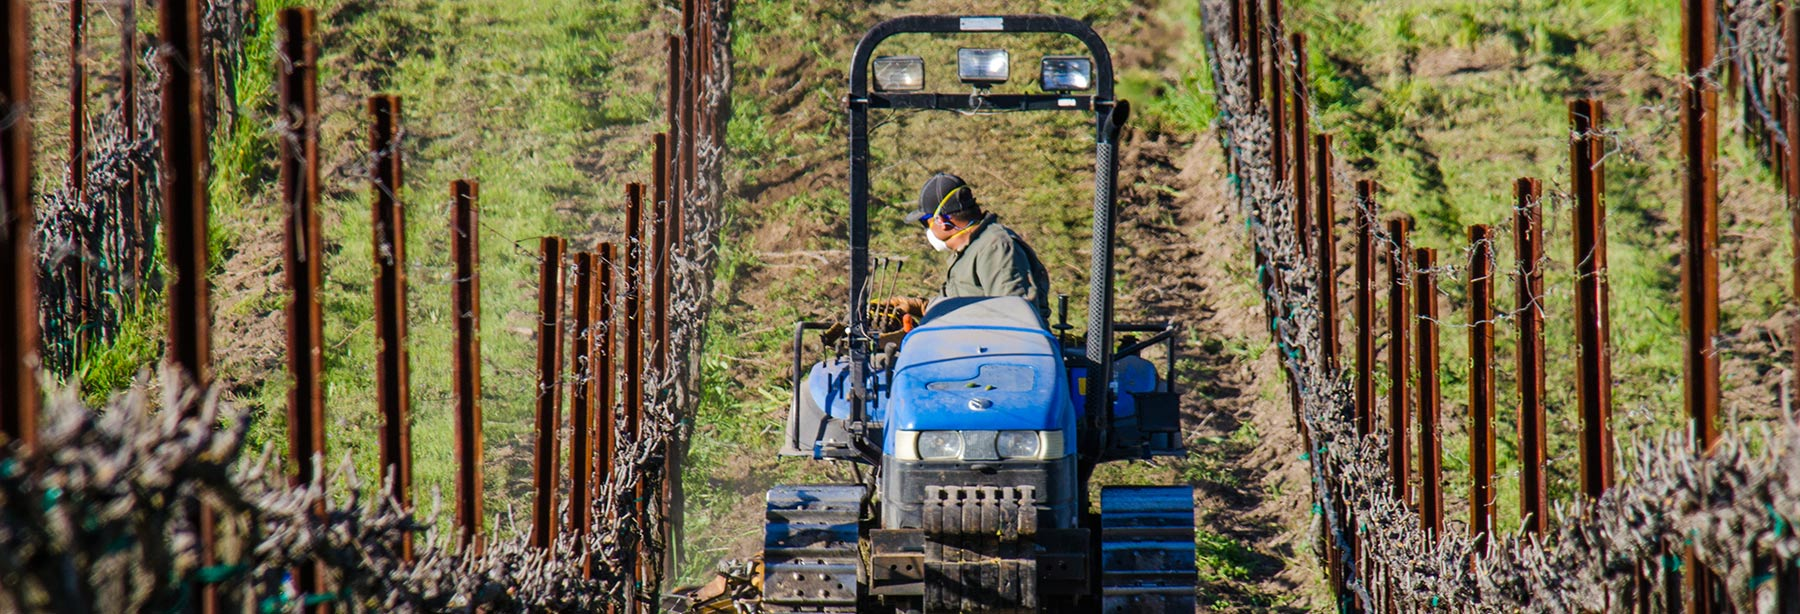 Vineyard Professional Services Photo